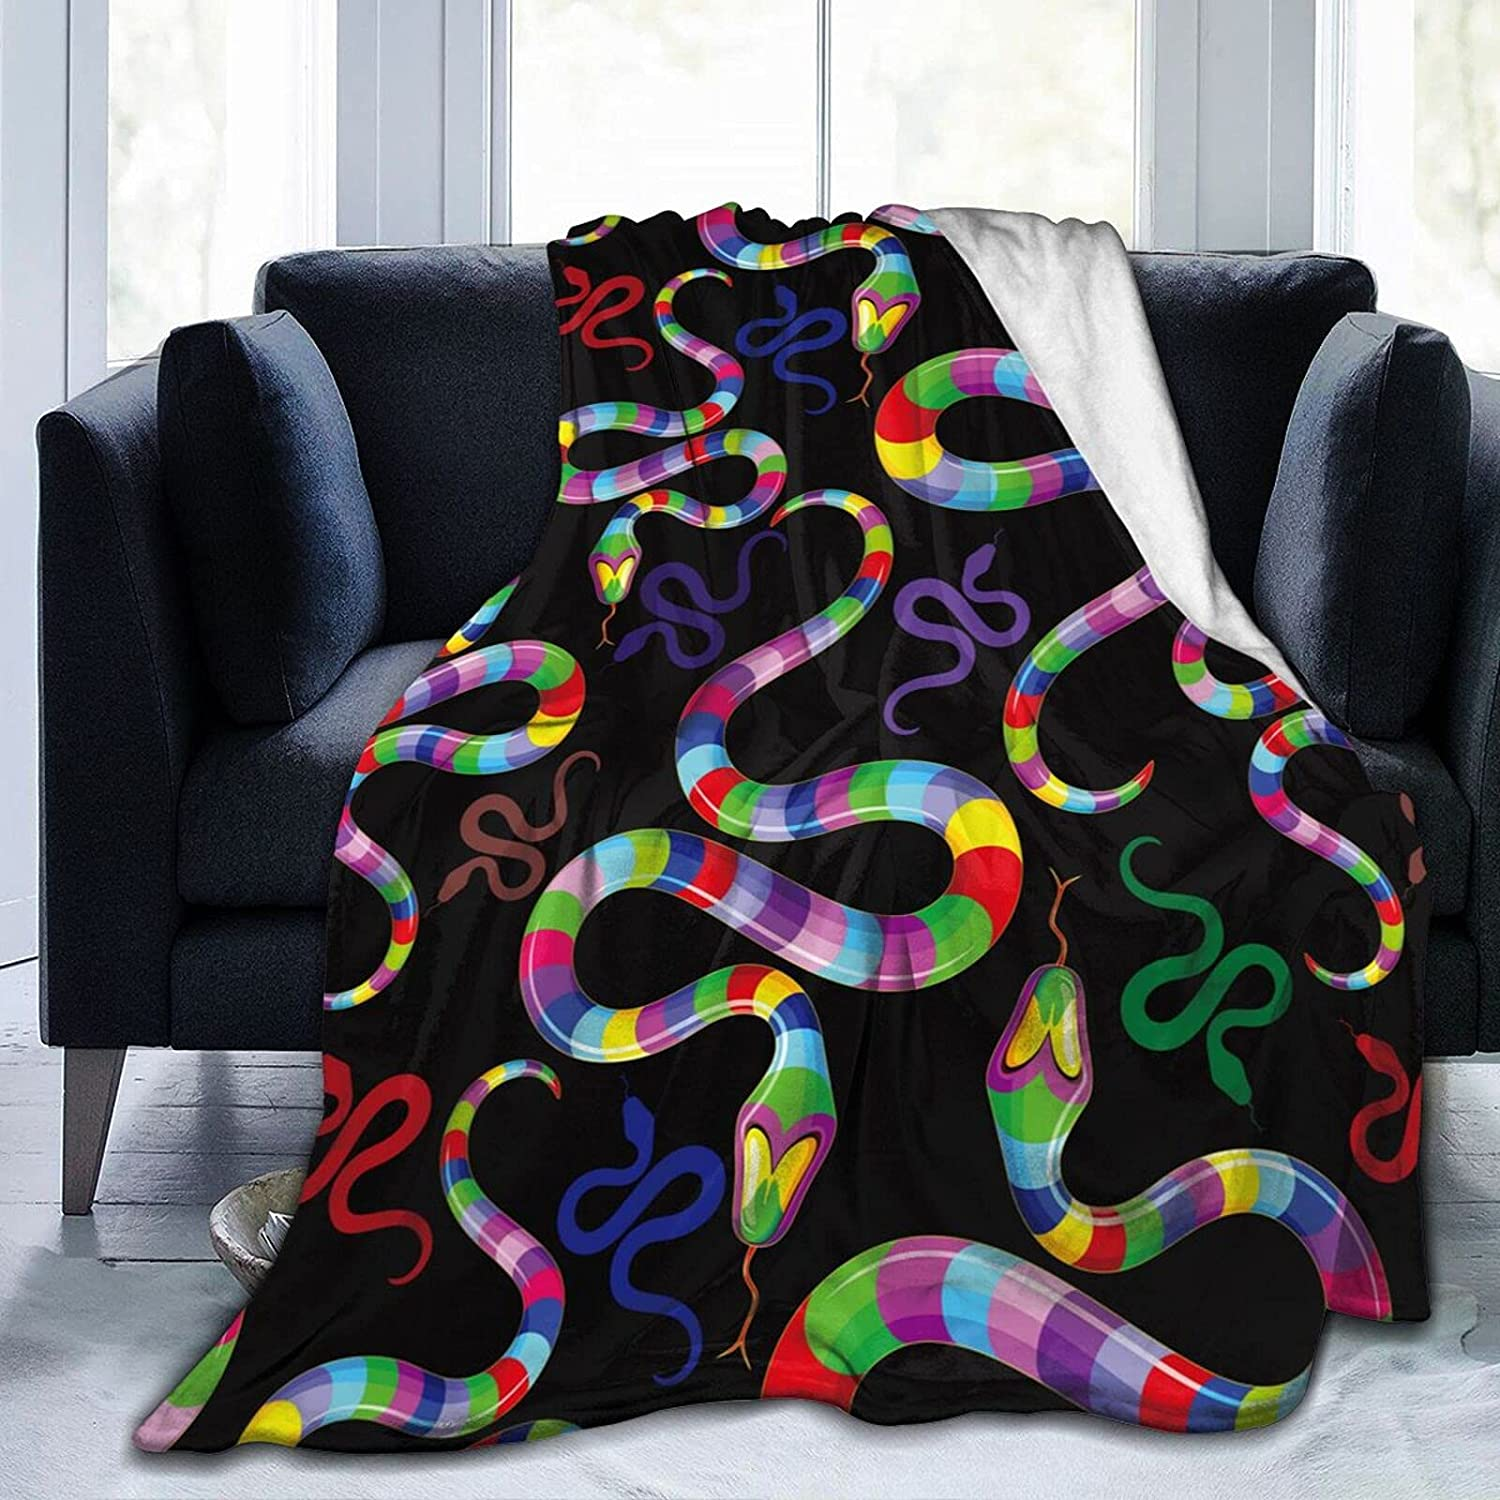 Popular product RISETRIAL Snake Psychedelic Rainbow NEW Throw Blanket Warm Anti Soft